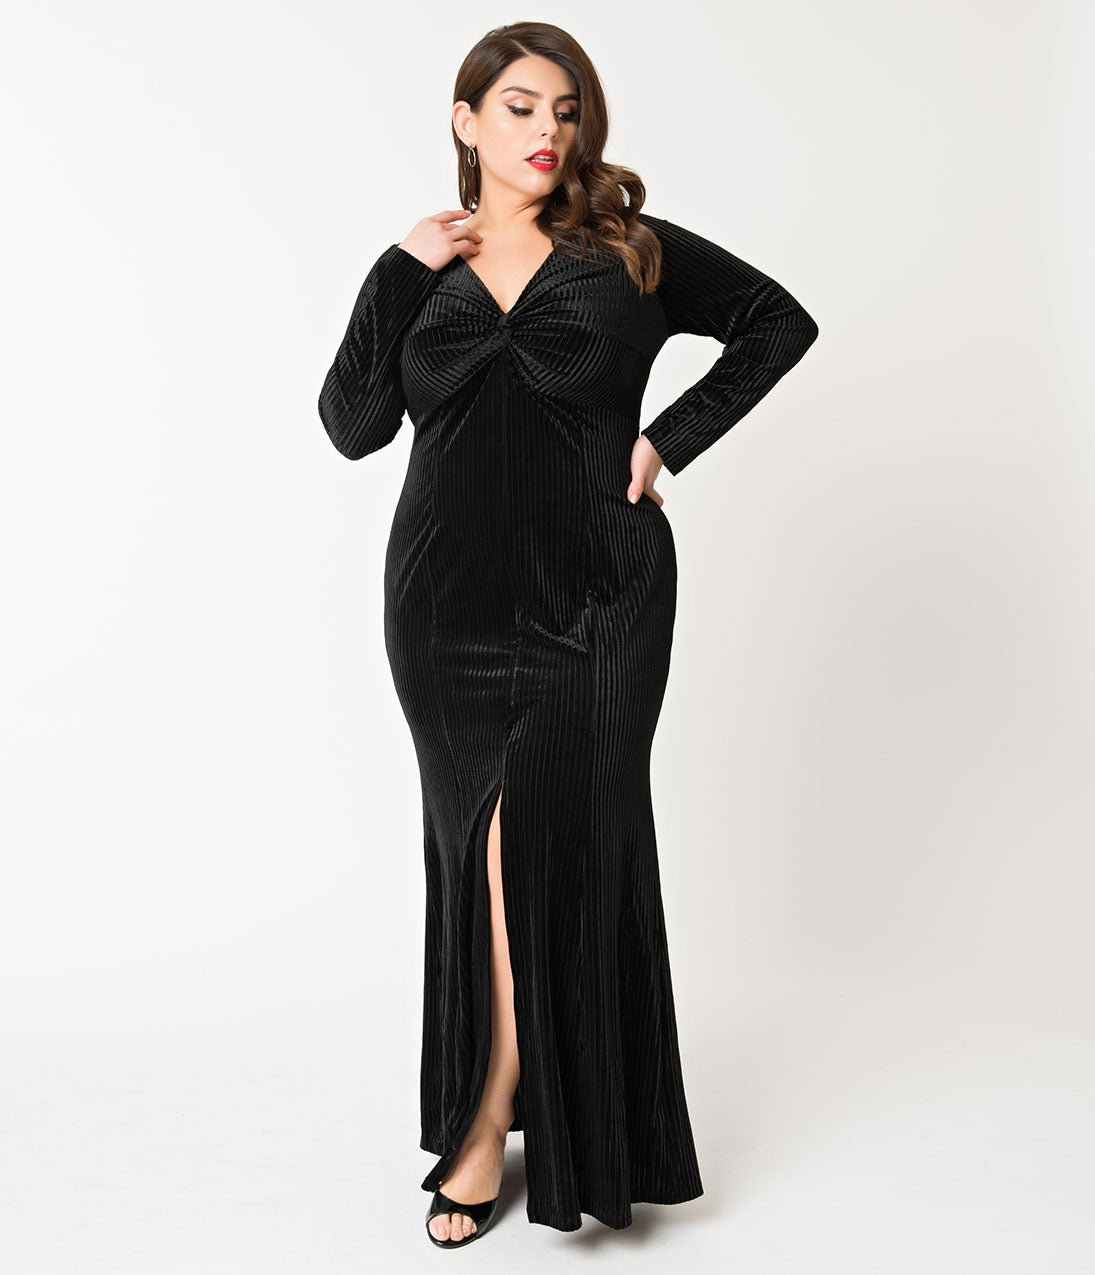 1930s Art Deco Plus Size Dresses | Tea Dresses, Party Dresses 1930S Style Black Ribbed Velvet Morticia Gown $92.00 AT vintagedancer.com